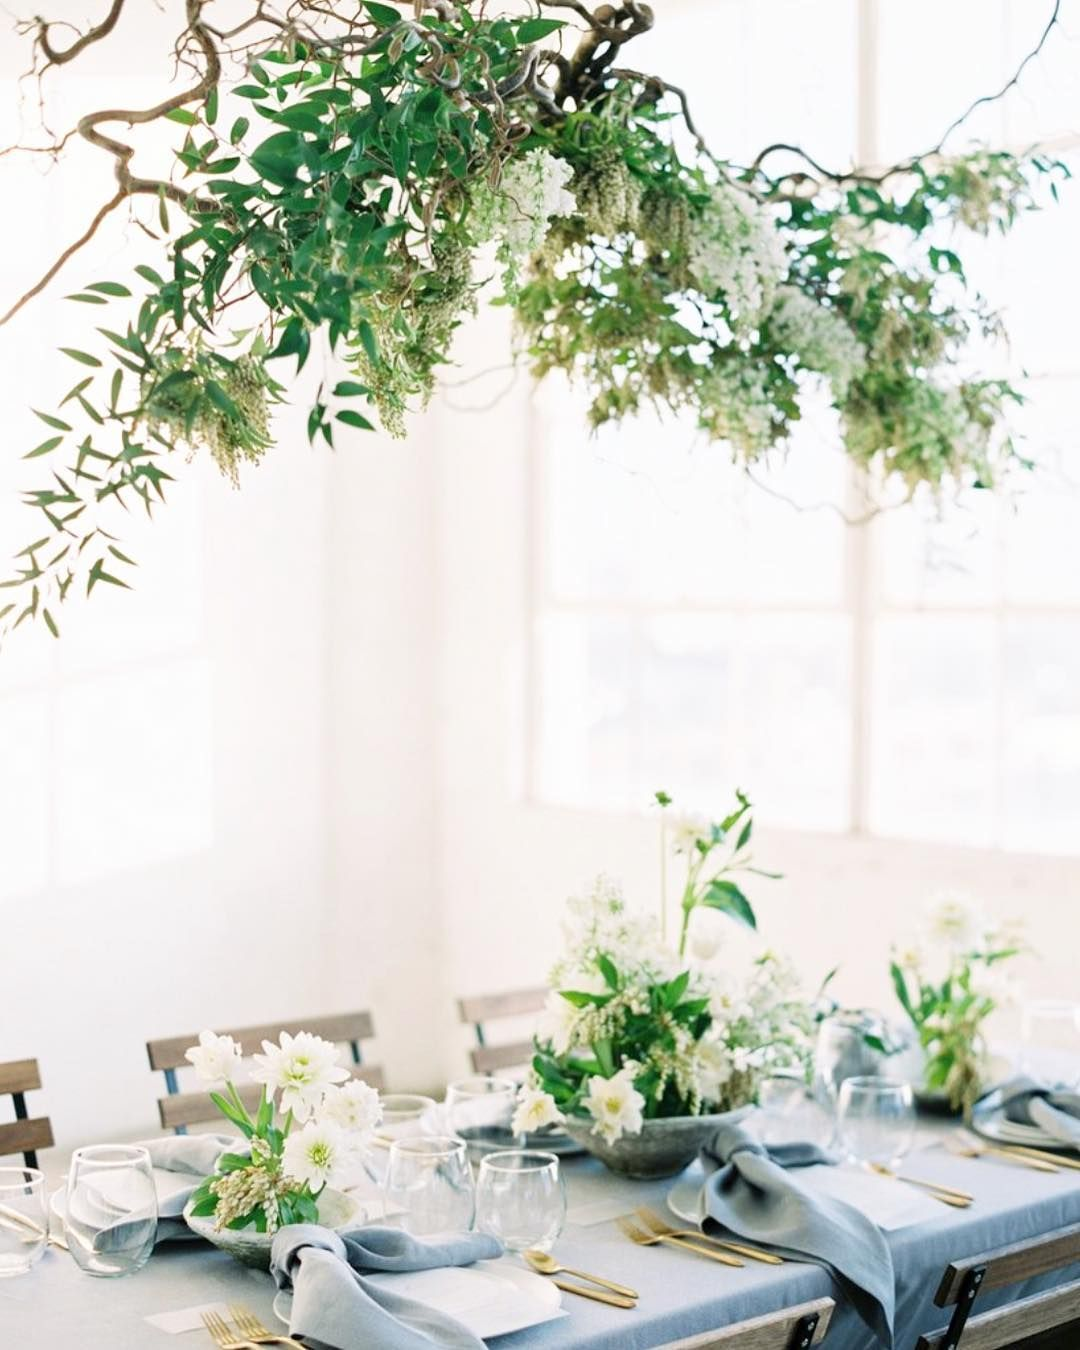 This Gorgeous Table Has Me Swooning  Happy Sweet Monday My